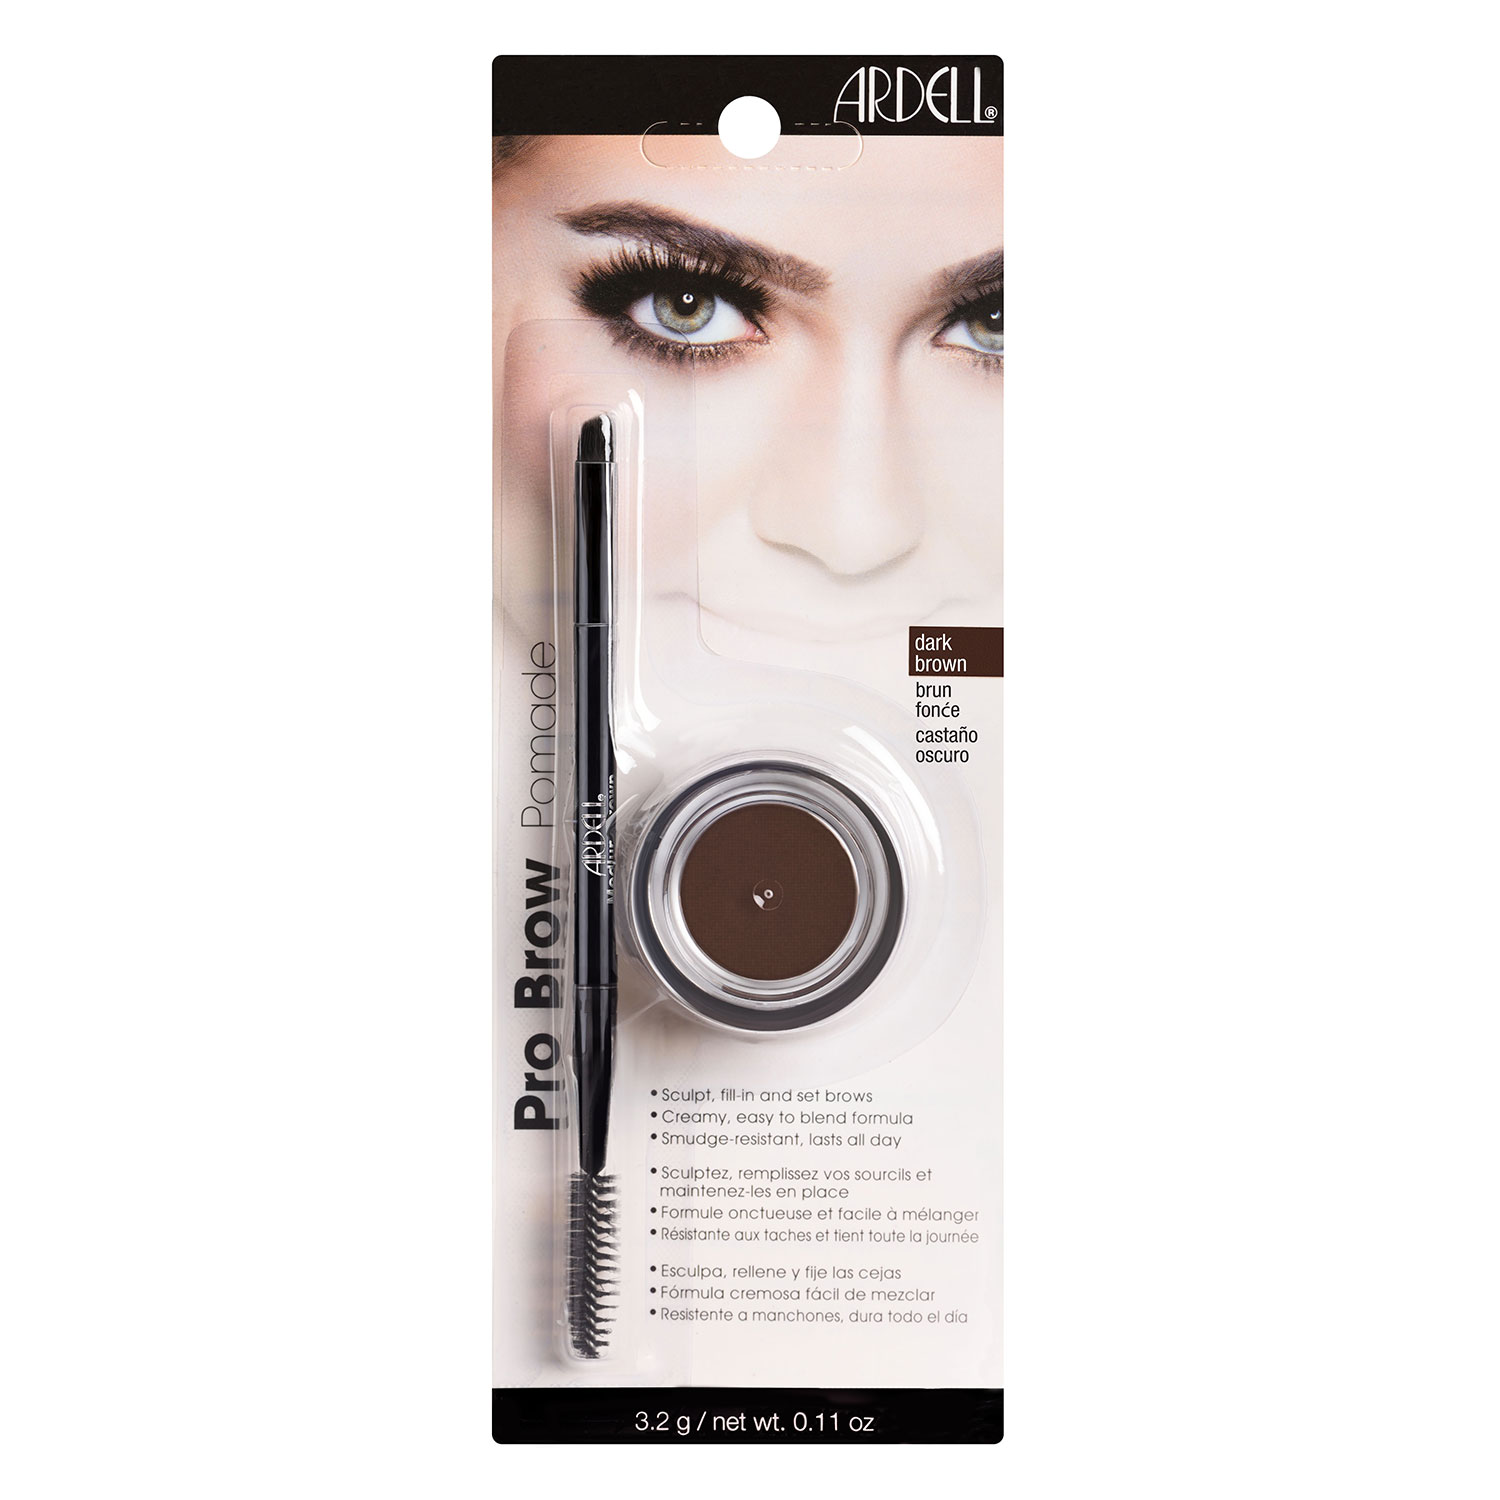 Ardell Brows - Brow Pomade/Brush Dark Brown